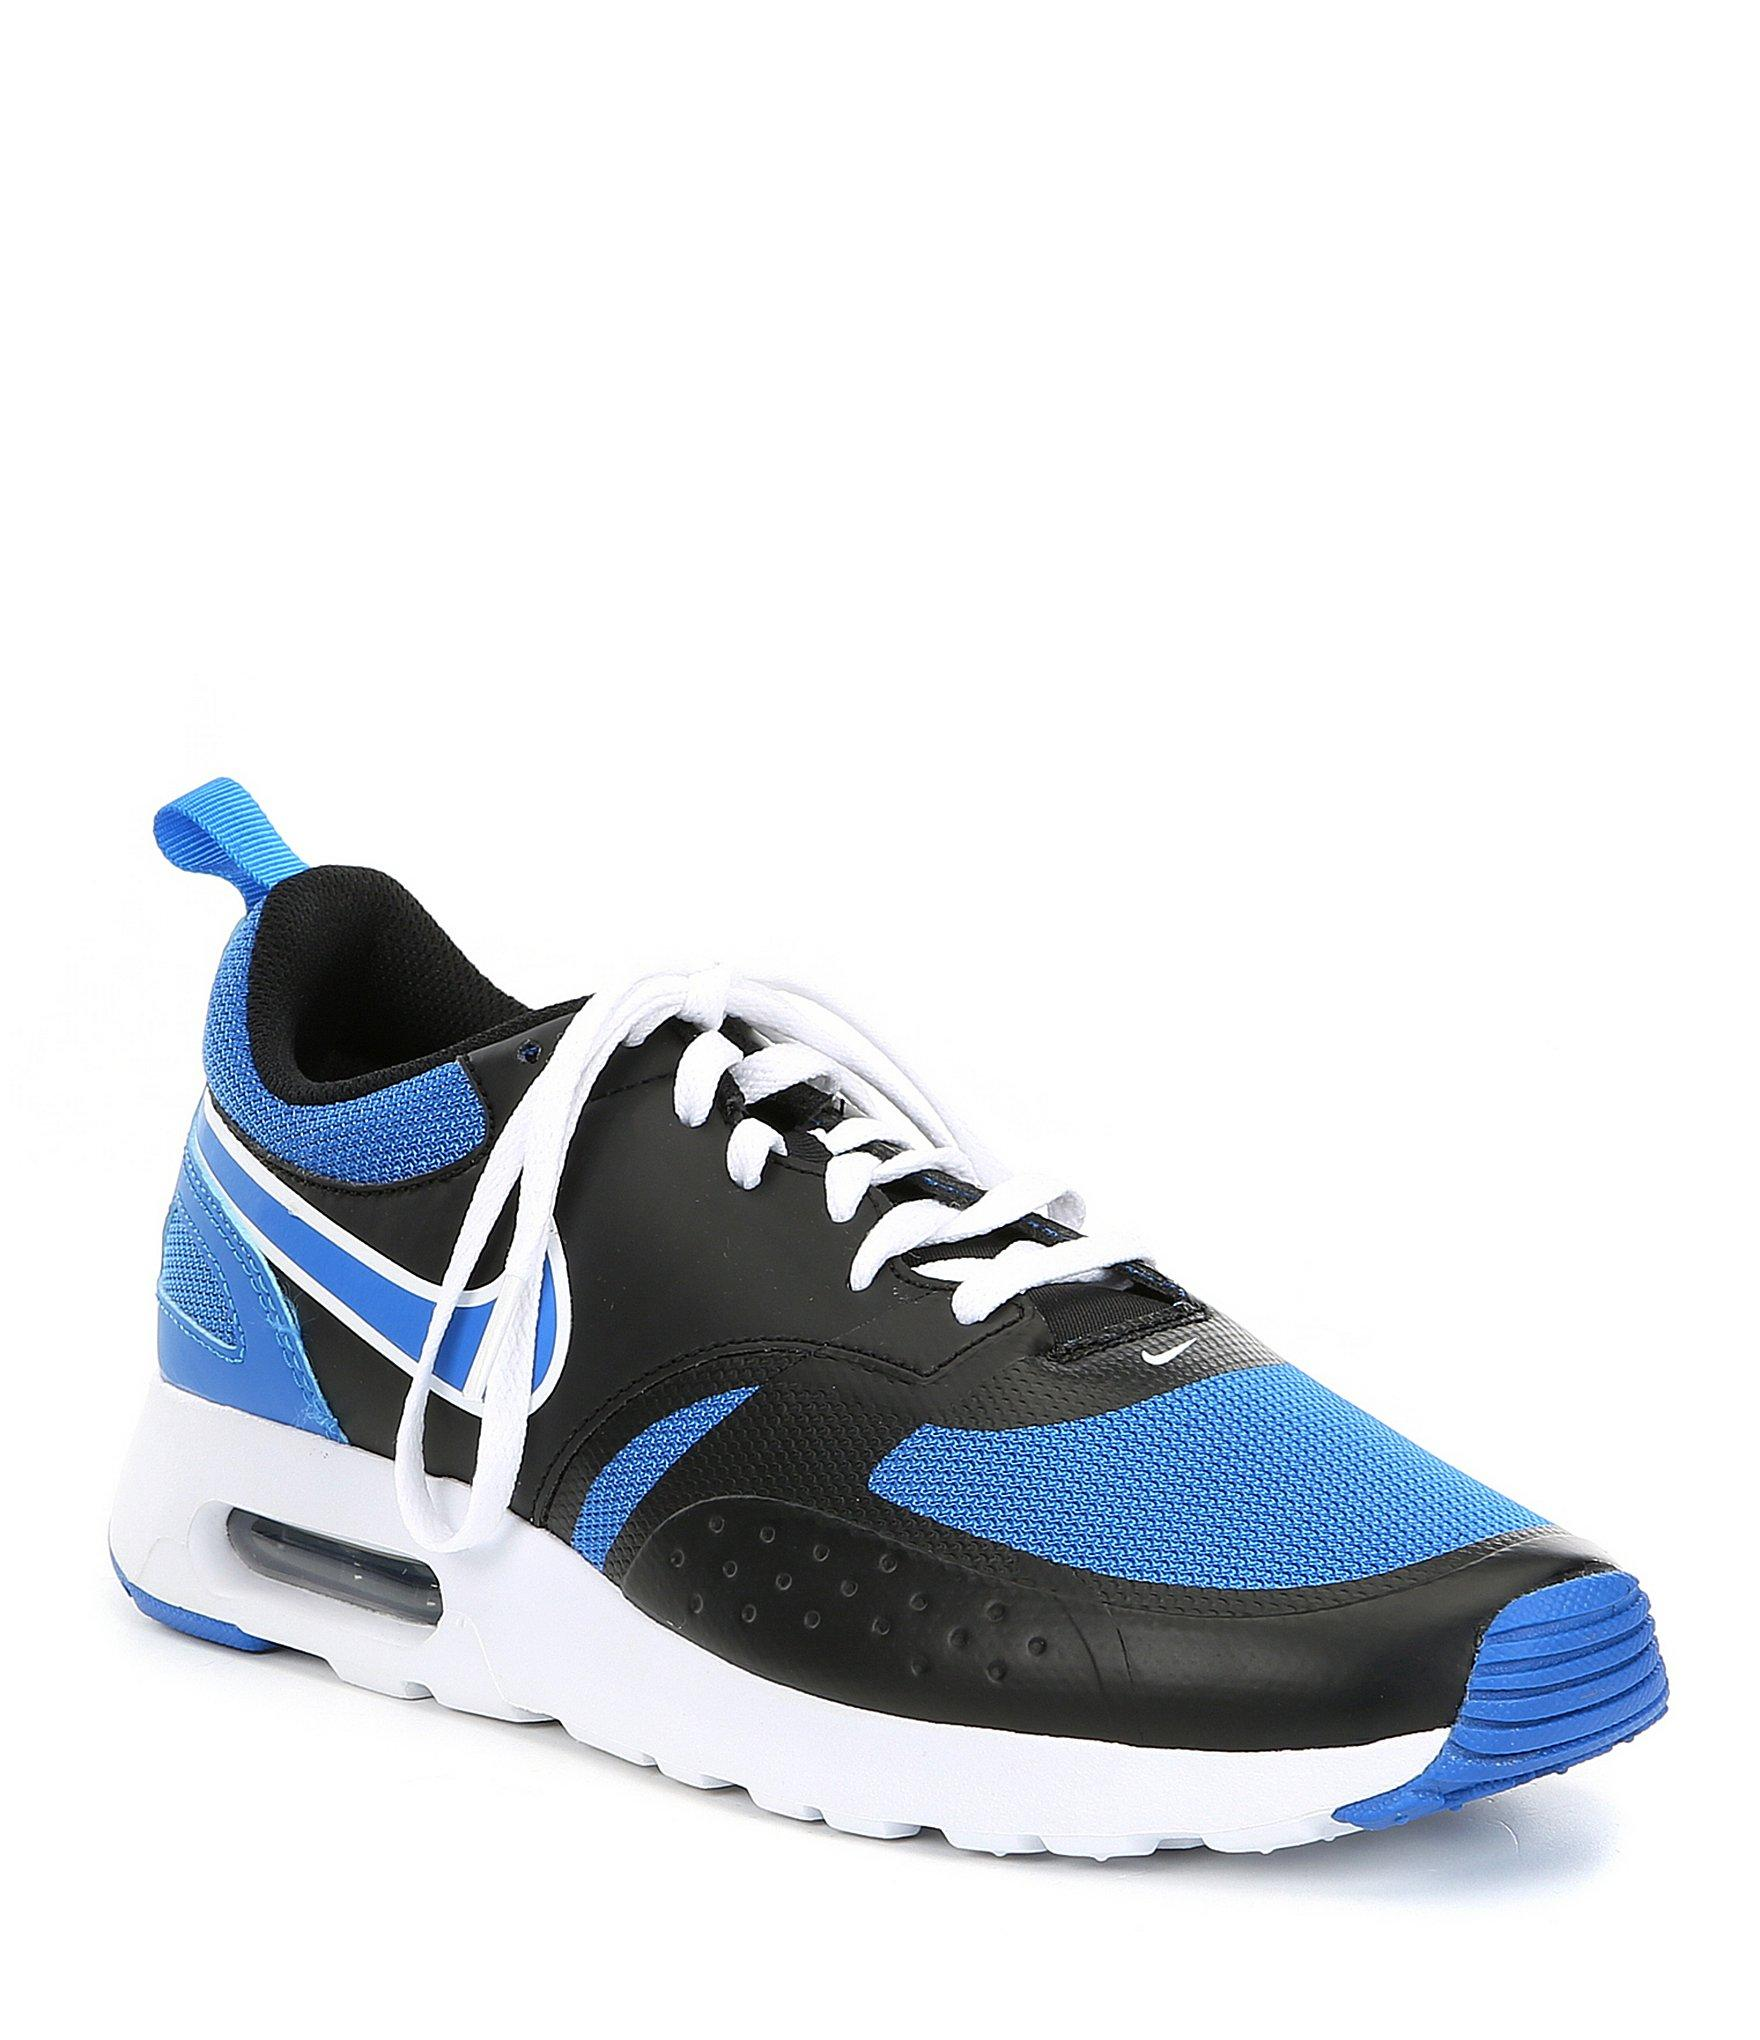 eb8f4e37718ef5 Nike Men s Air Max Vision Lifestyle Shoes in Blue for Men - Lyst